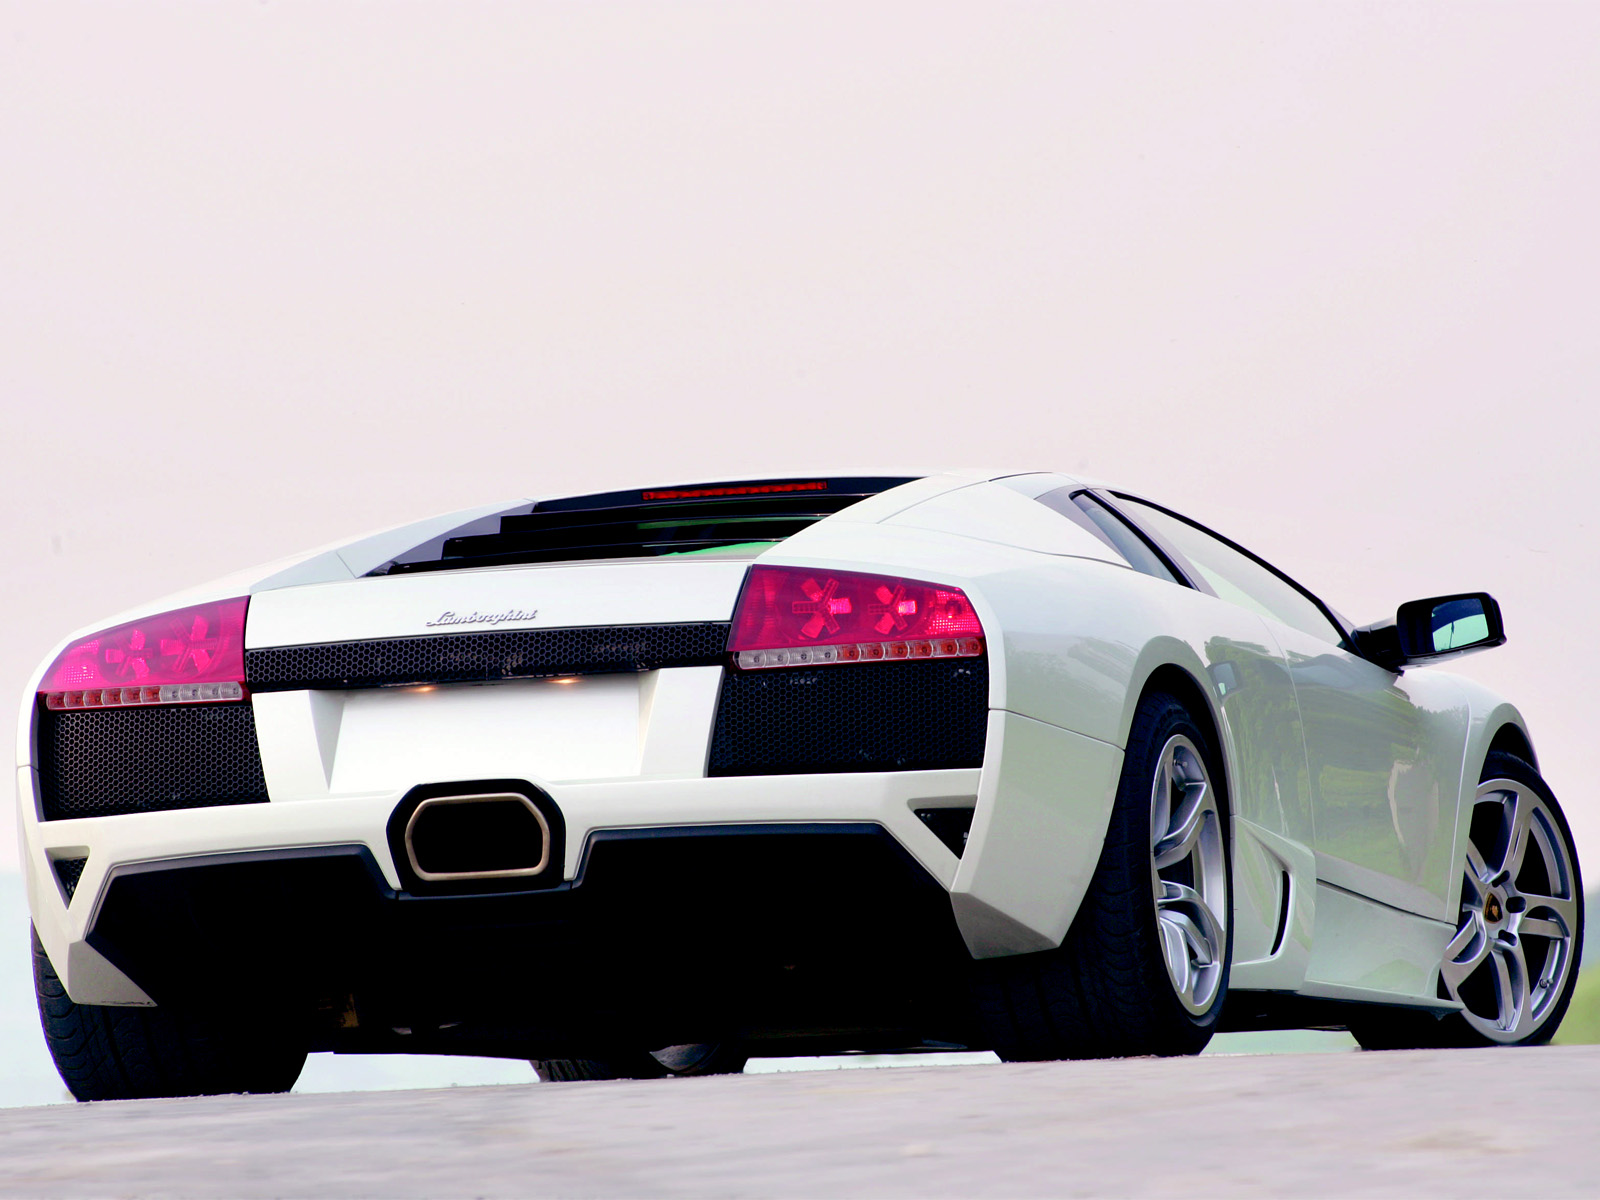 Cool car wallpaper high definition 4262